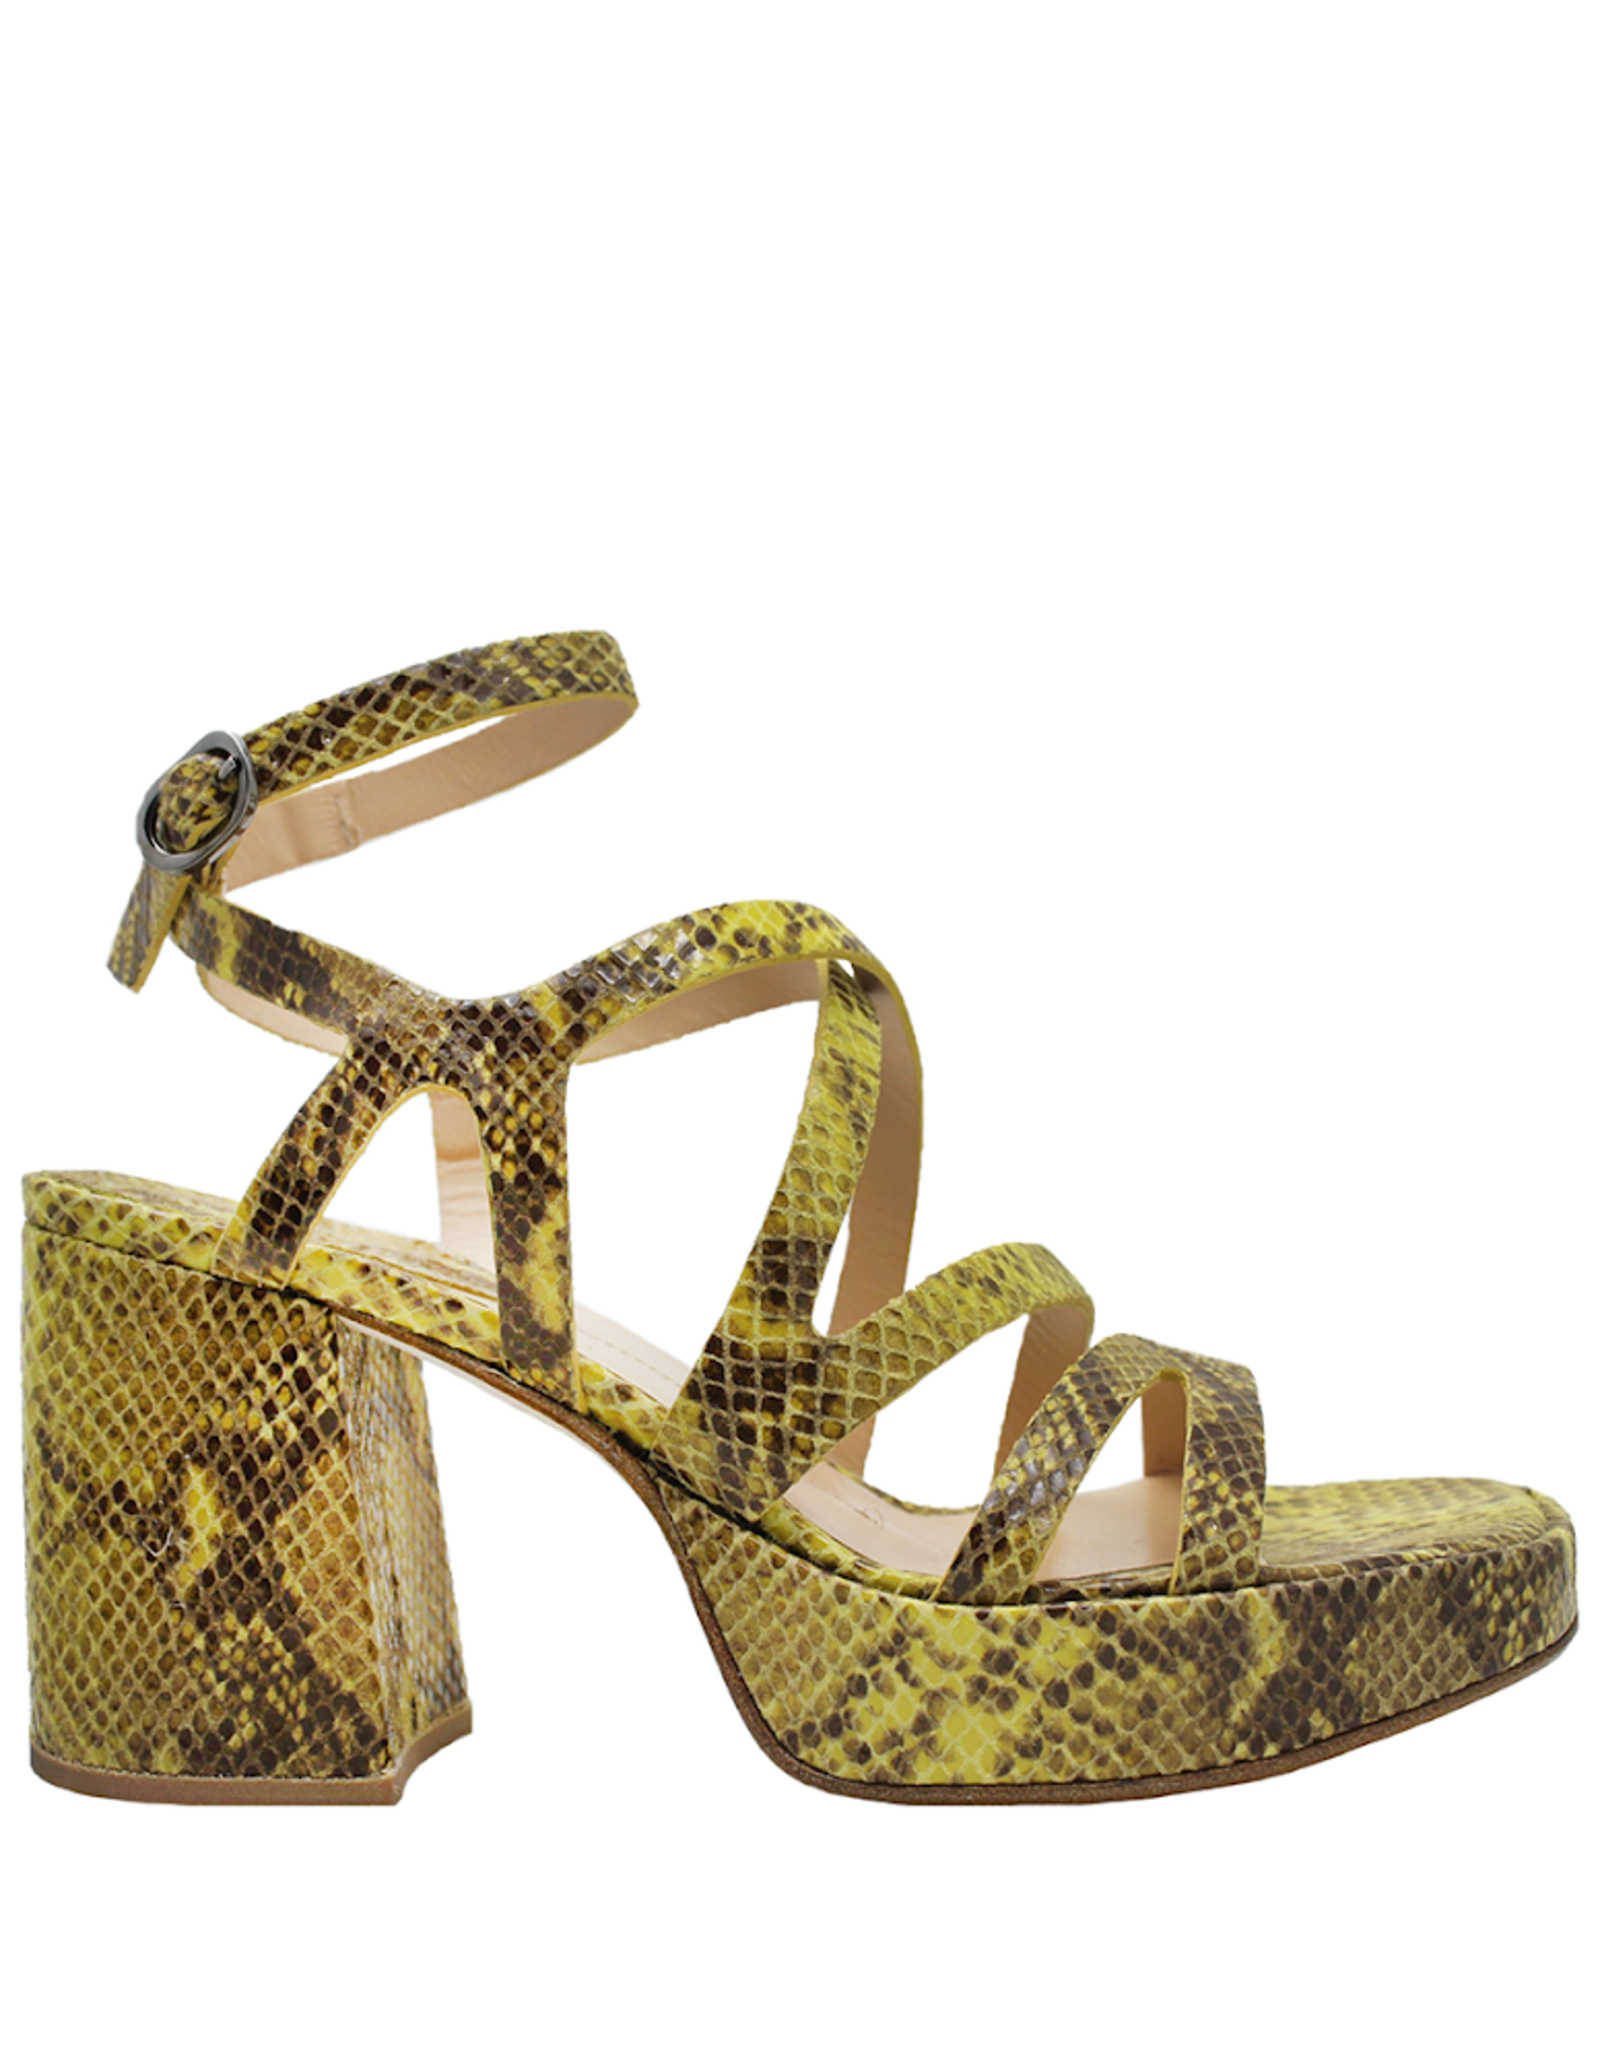 Ixos Ixos Lemon Embossed Platform With Buckled Closure 9001